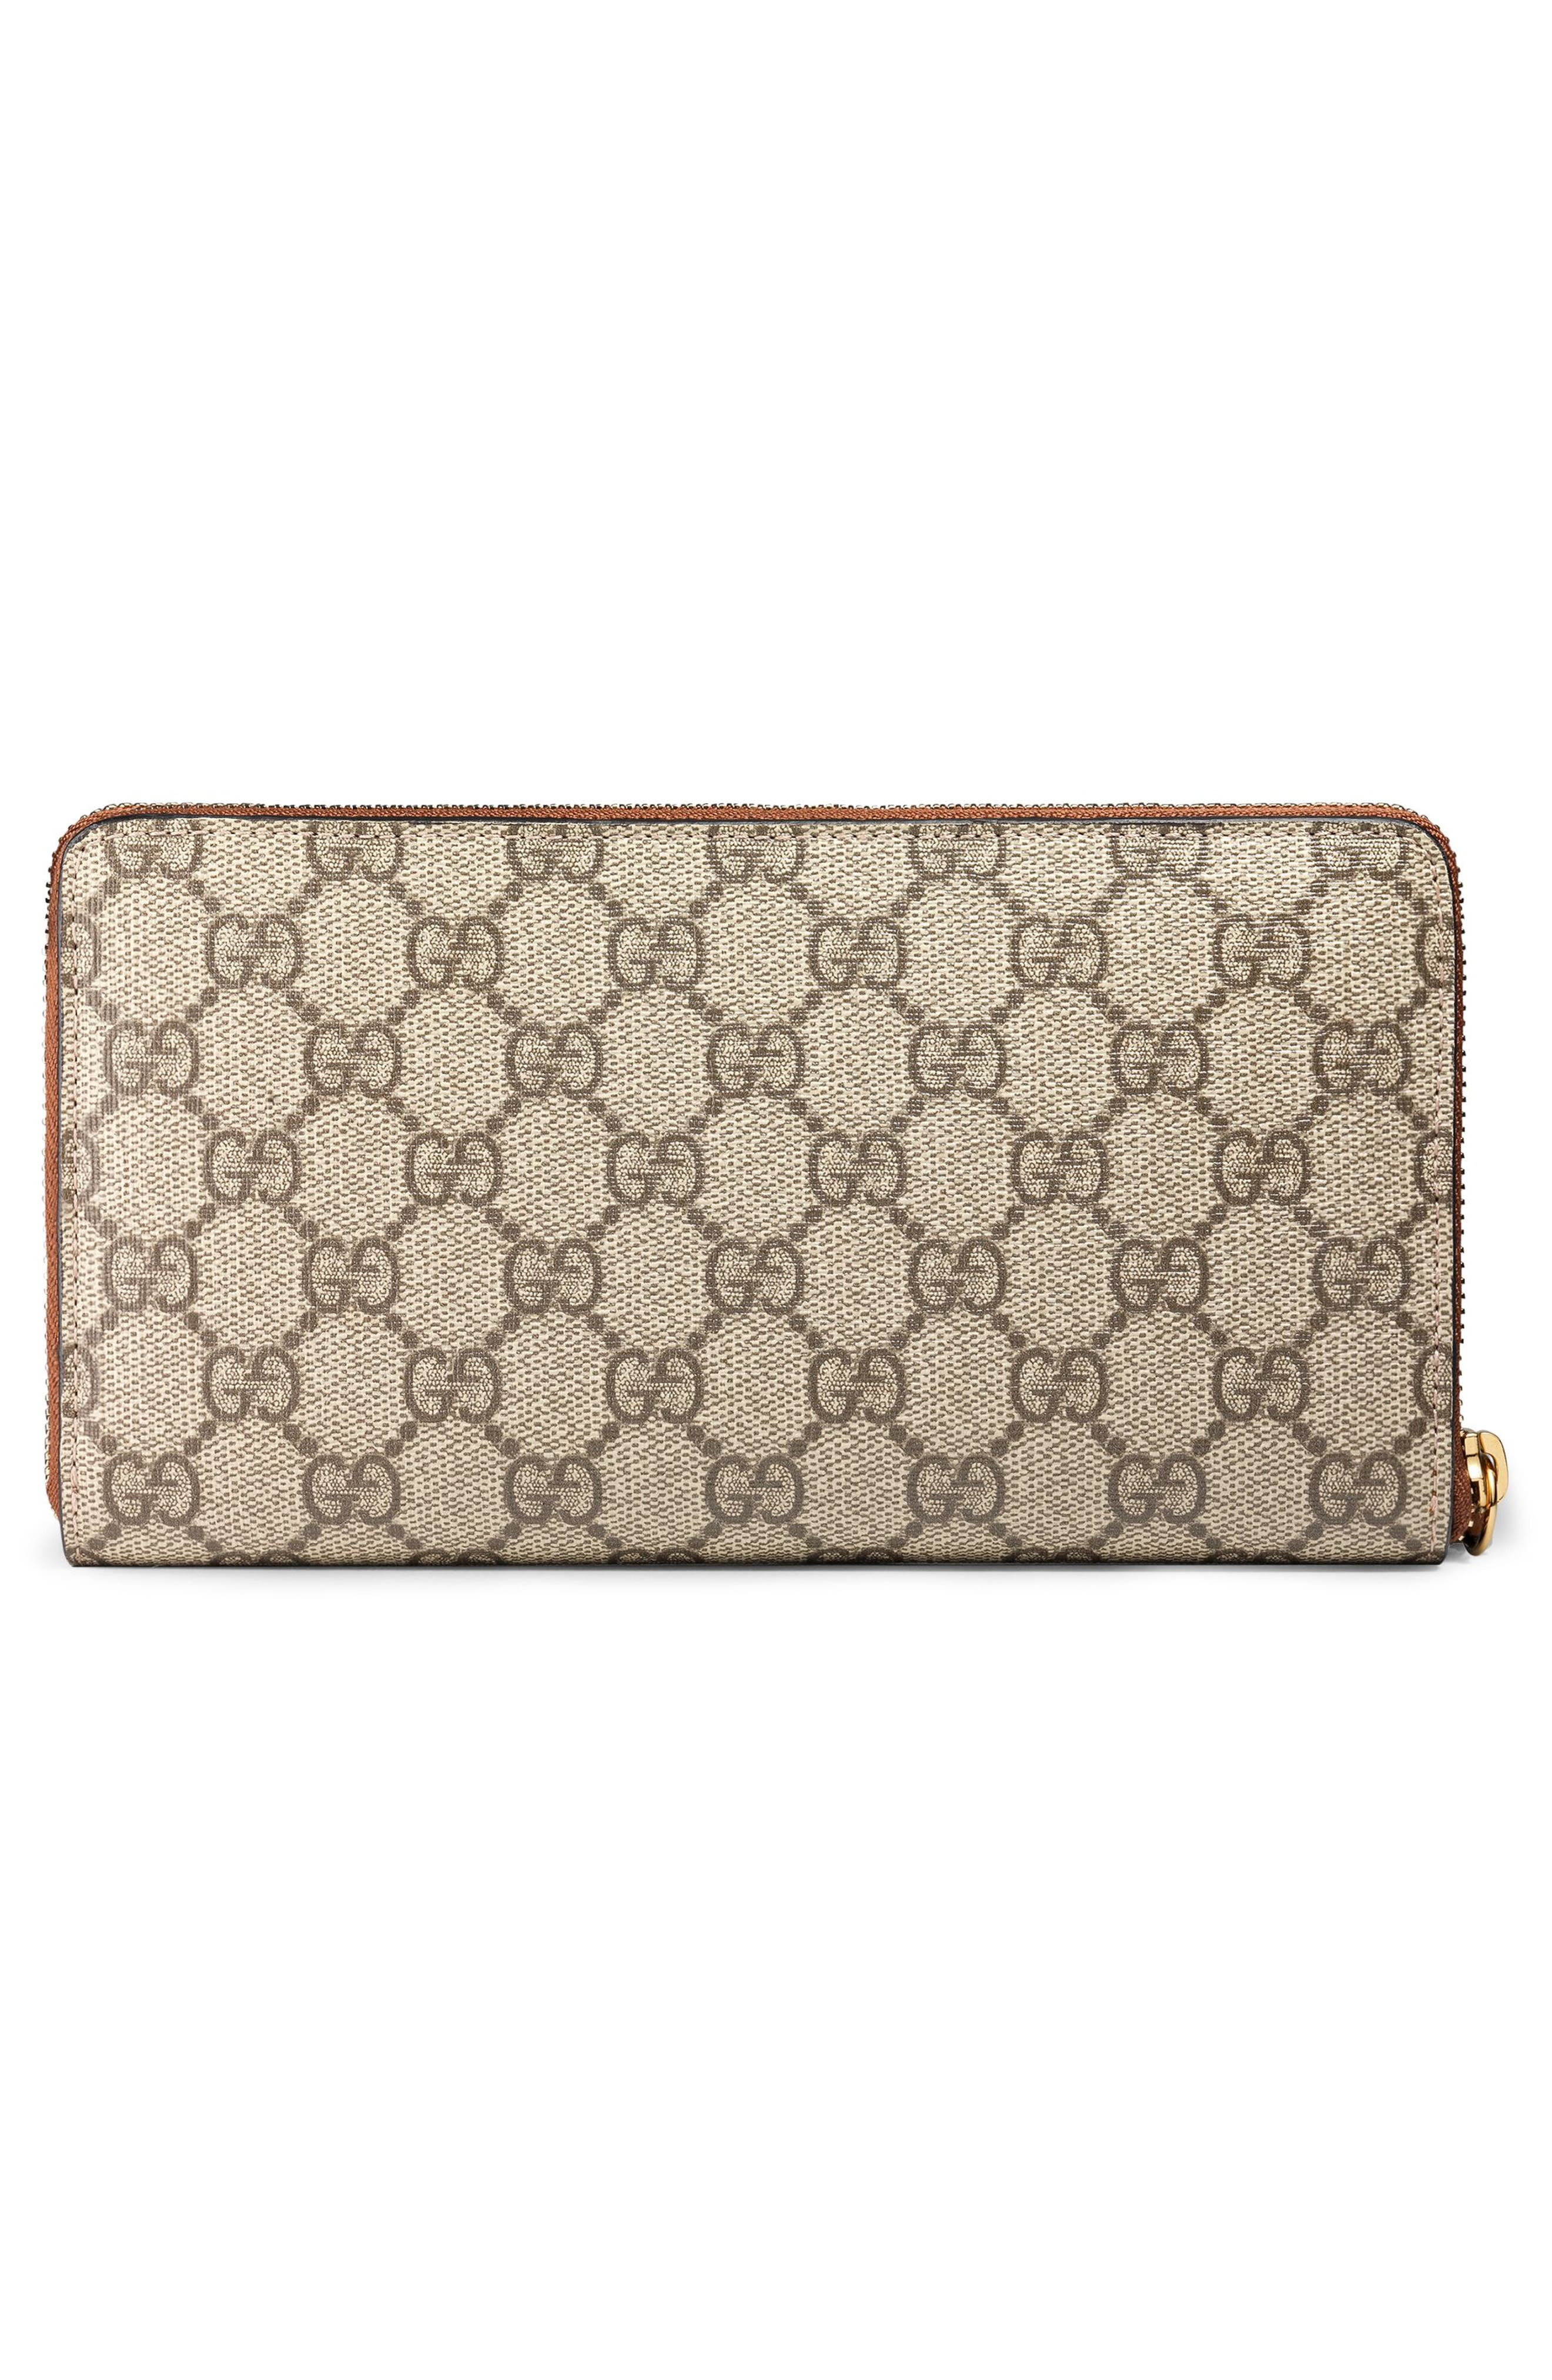 GG Supreme Zip Around Canvas Wallet,                             Alternate thumbnail 3, color,                             BEIGE/EBONY/CUIR